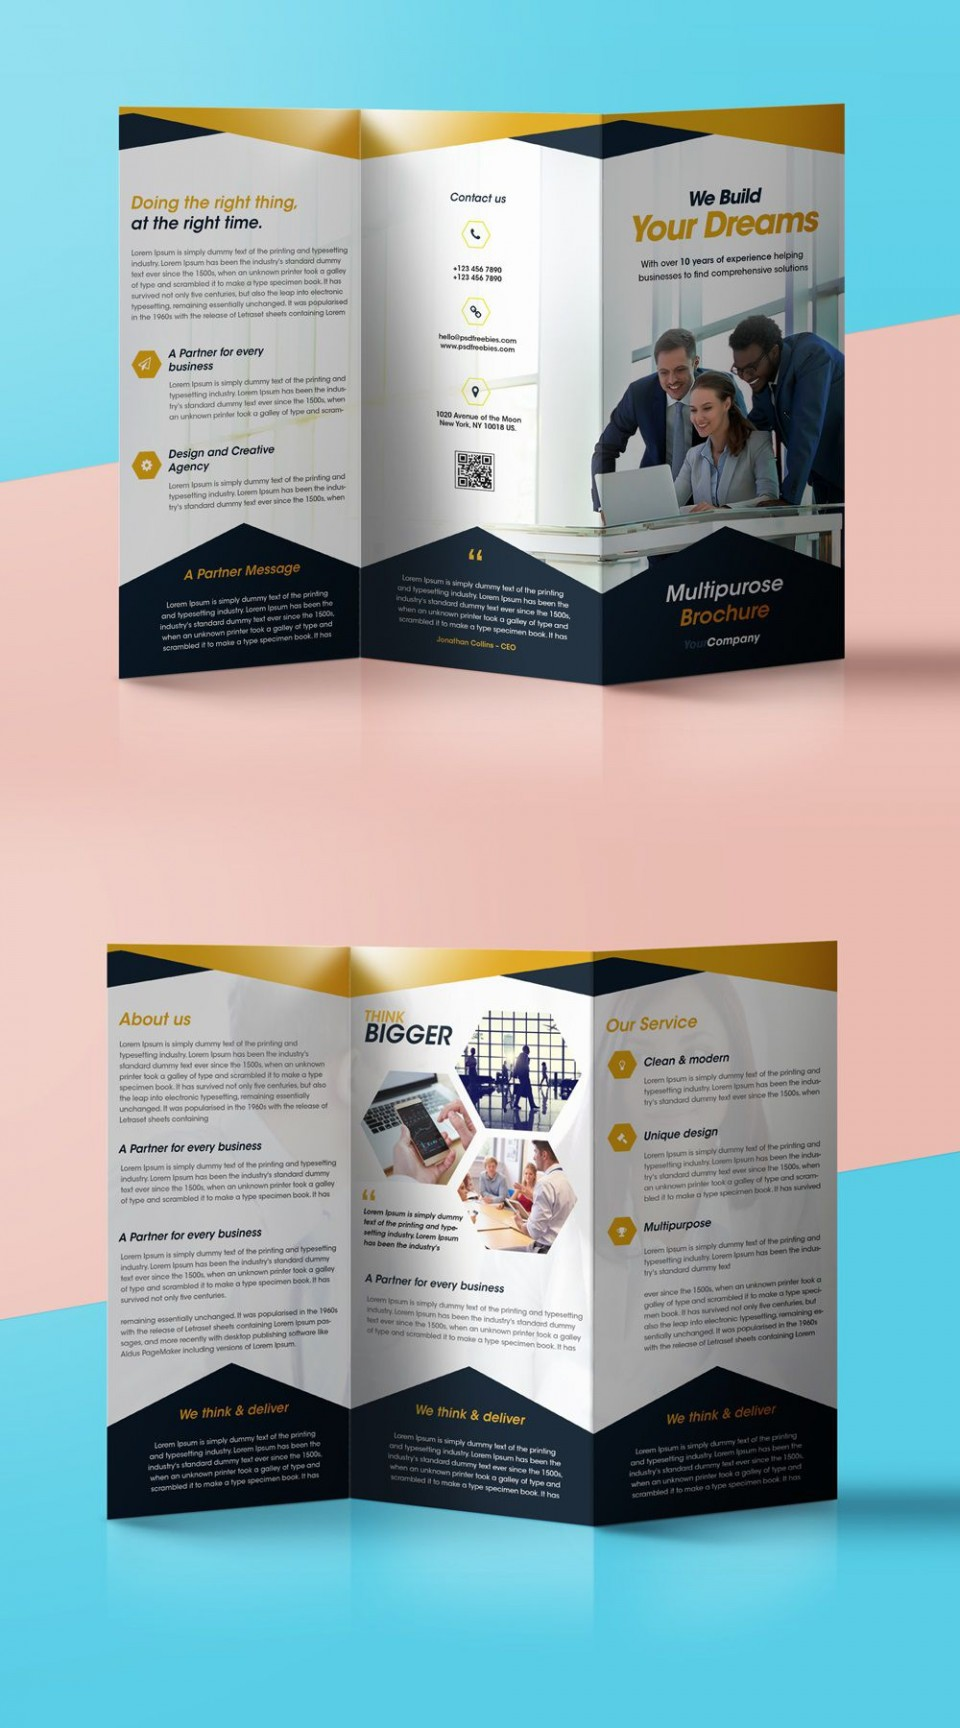 006 Incredible 3 Fold Brochure Template High Def  For Free960